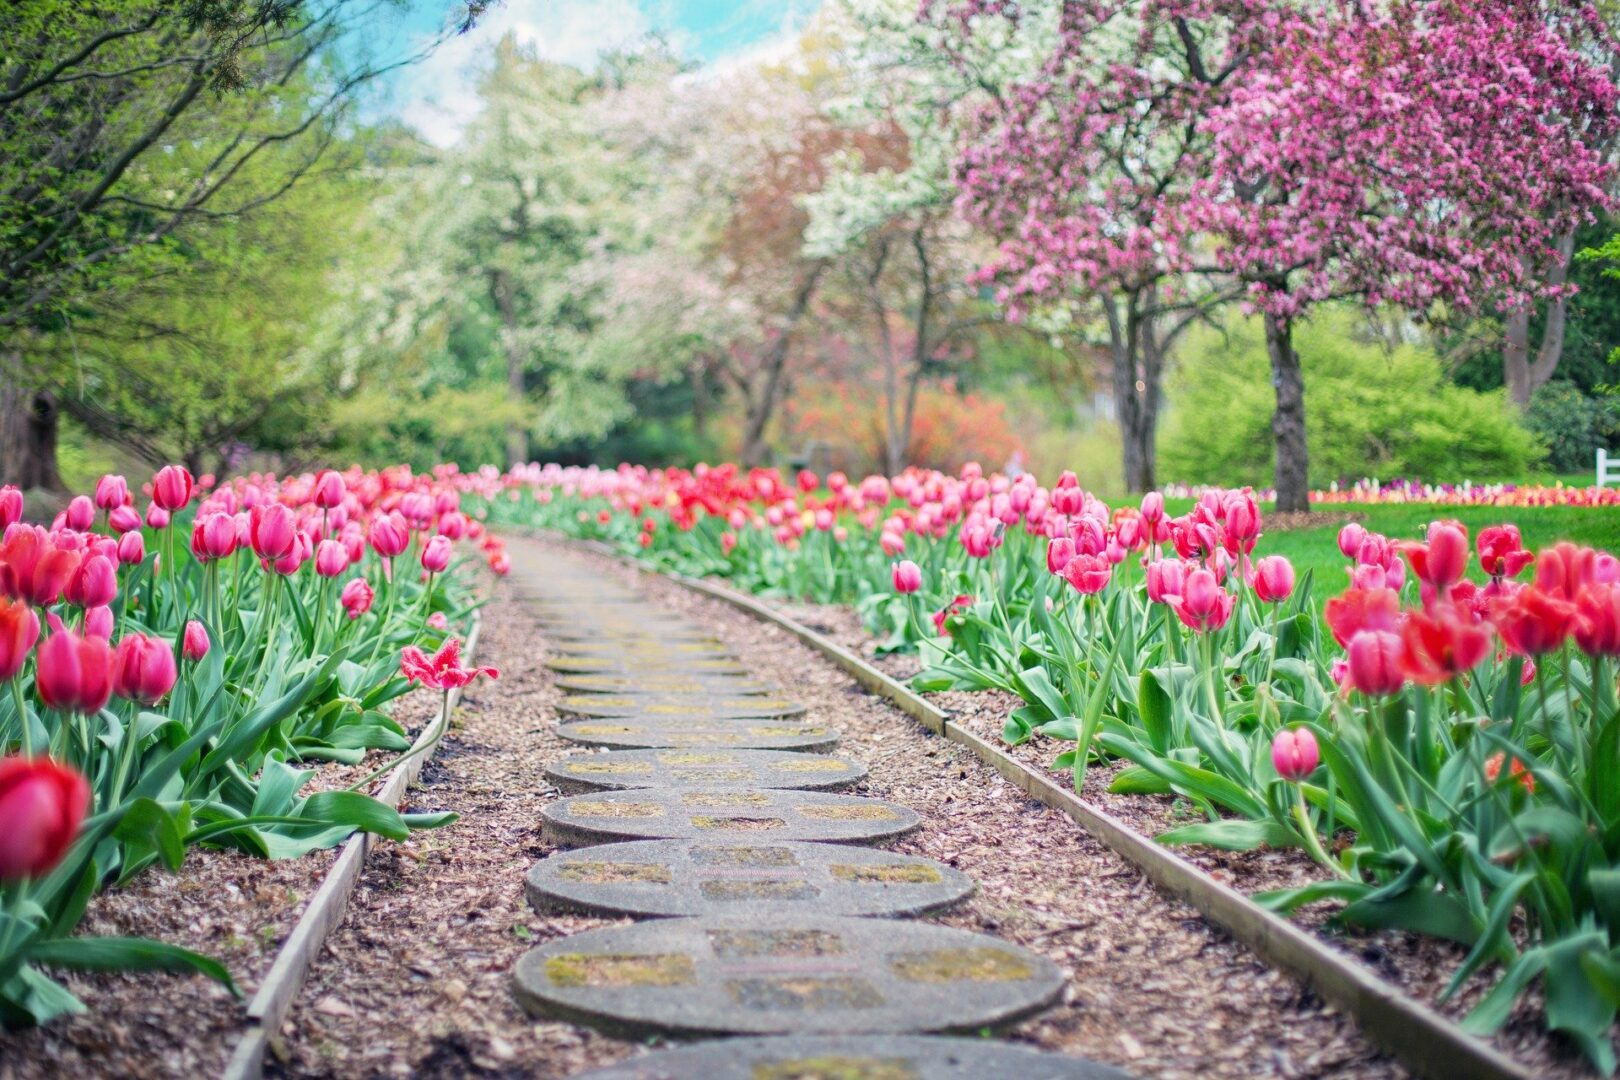 Path with tulips lining either side